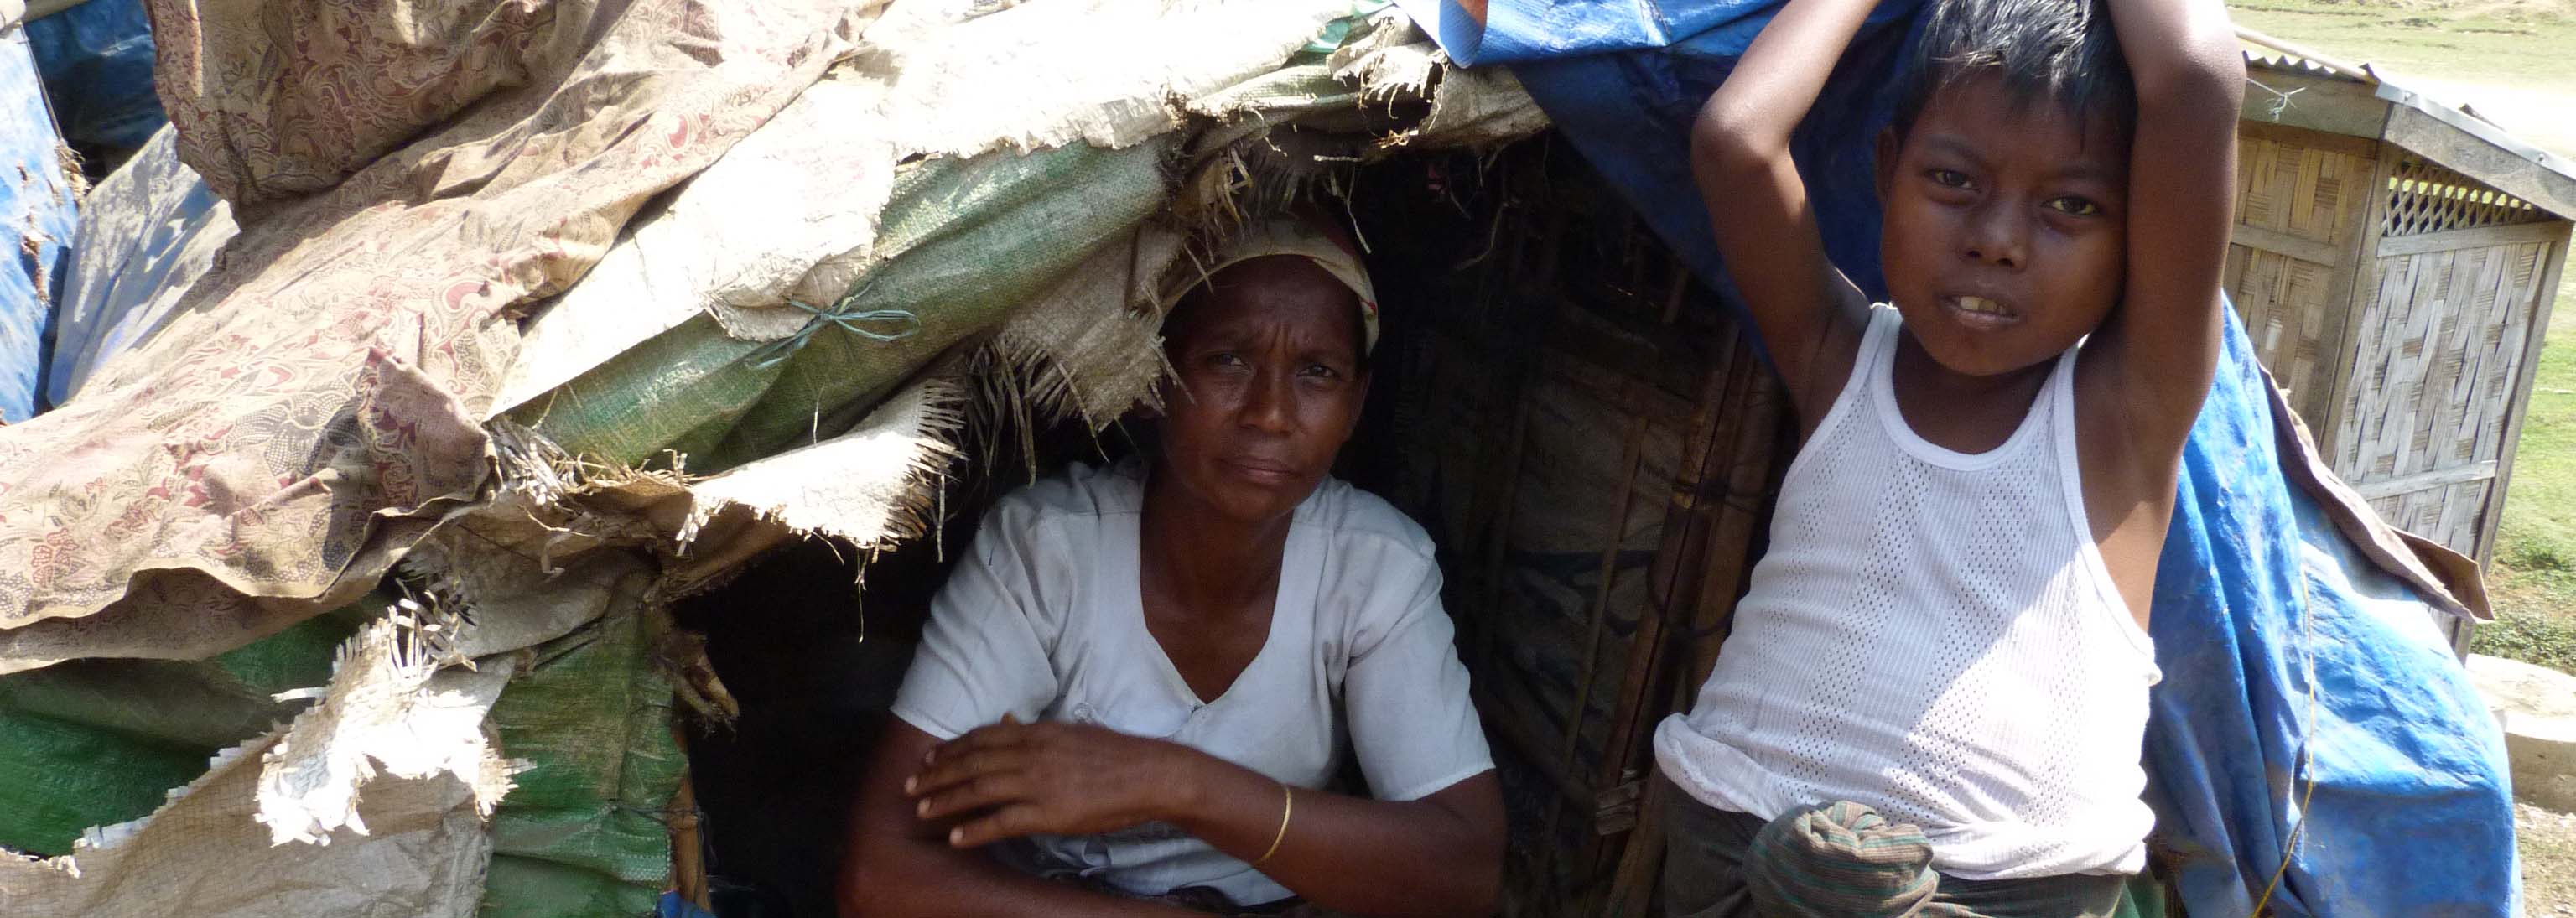 READ INTER PARES' STATEMENT ON THE LATEST VIOLENCE AGAINST THE ROHINGYA IN BURMA